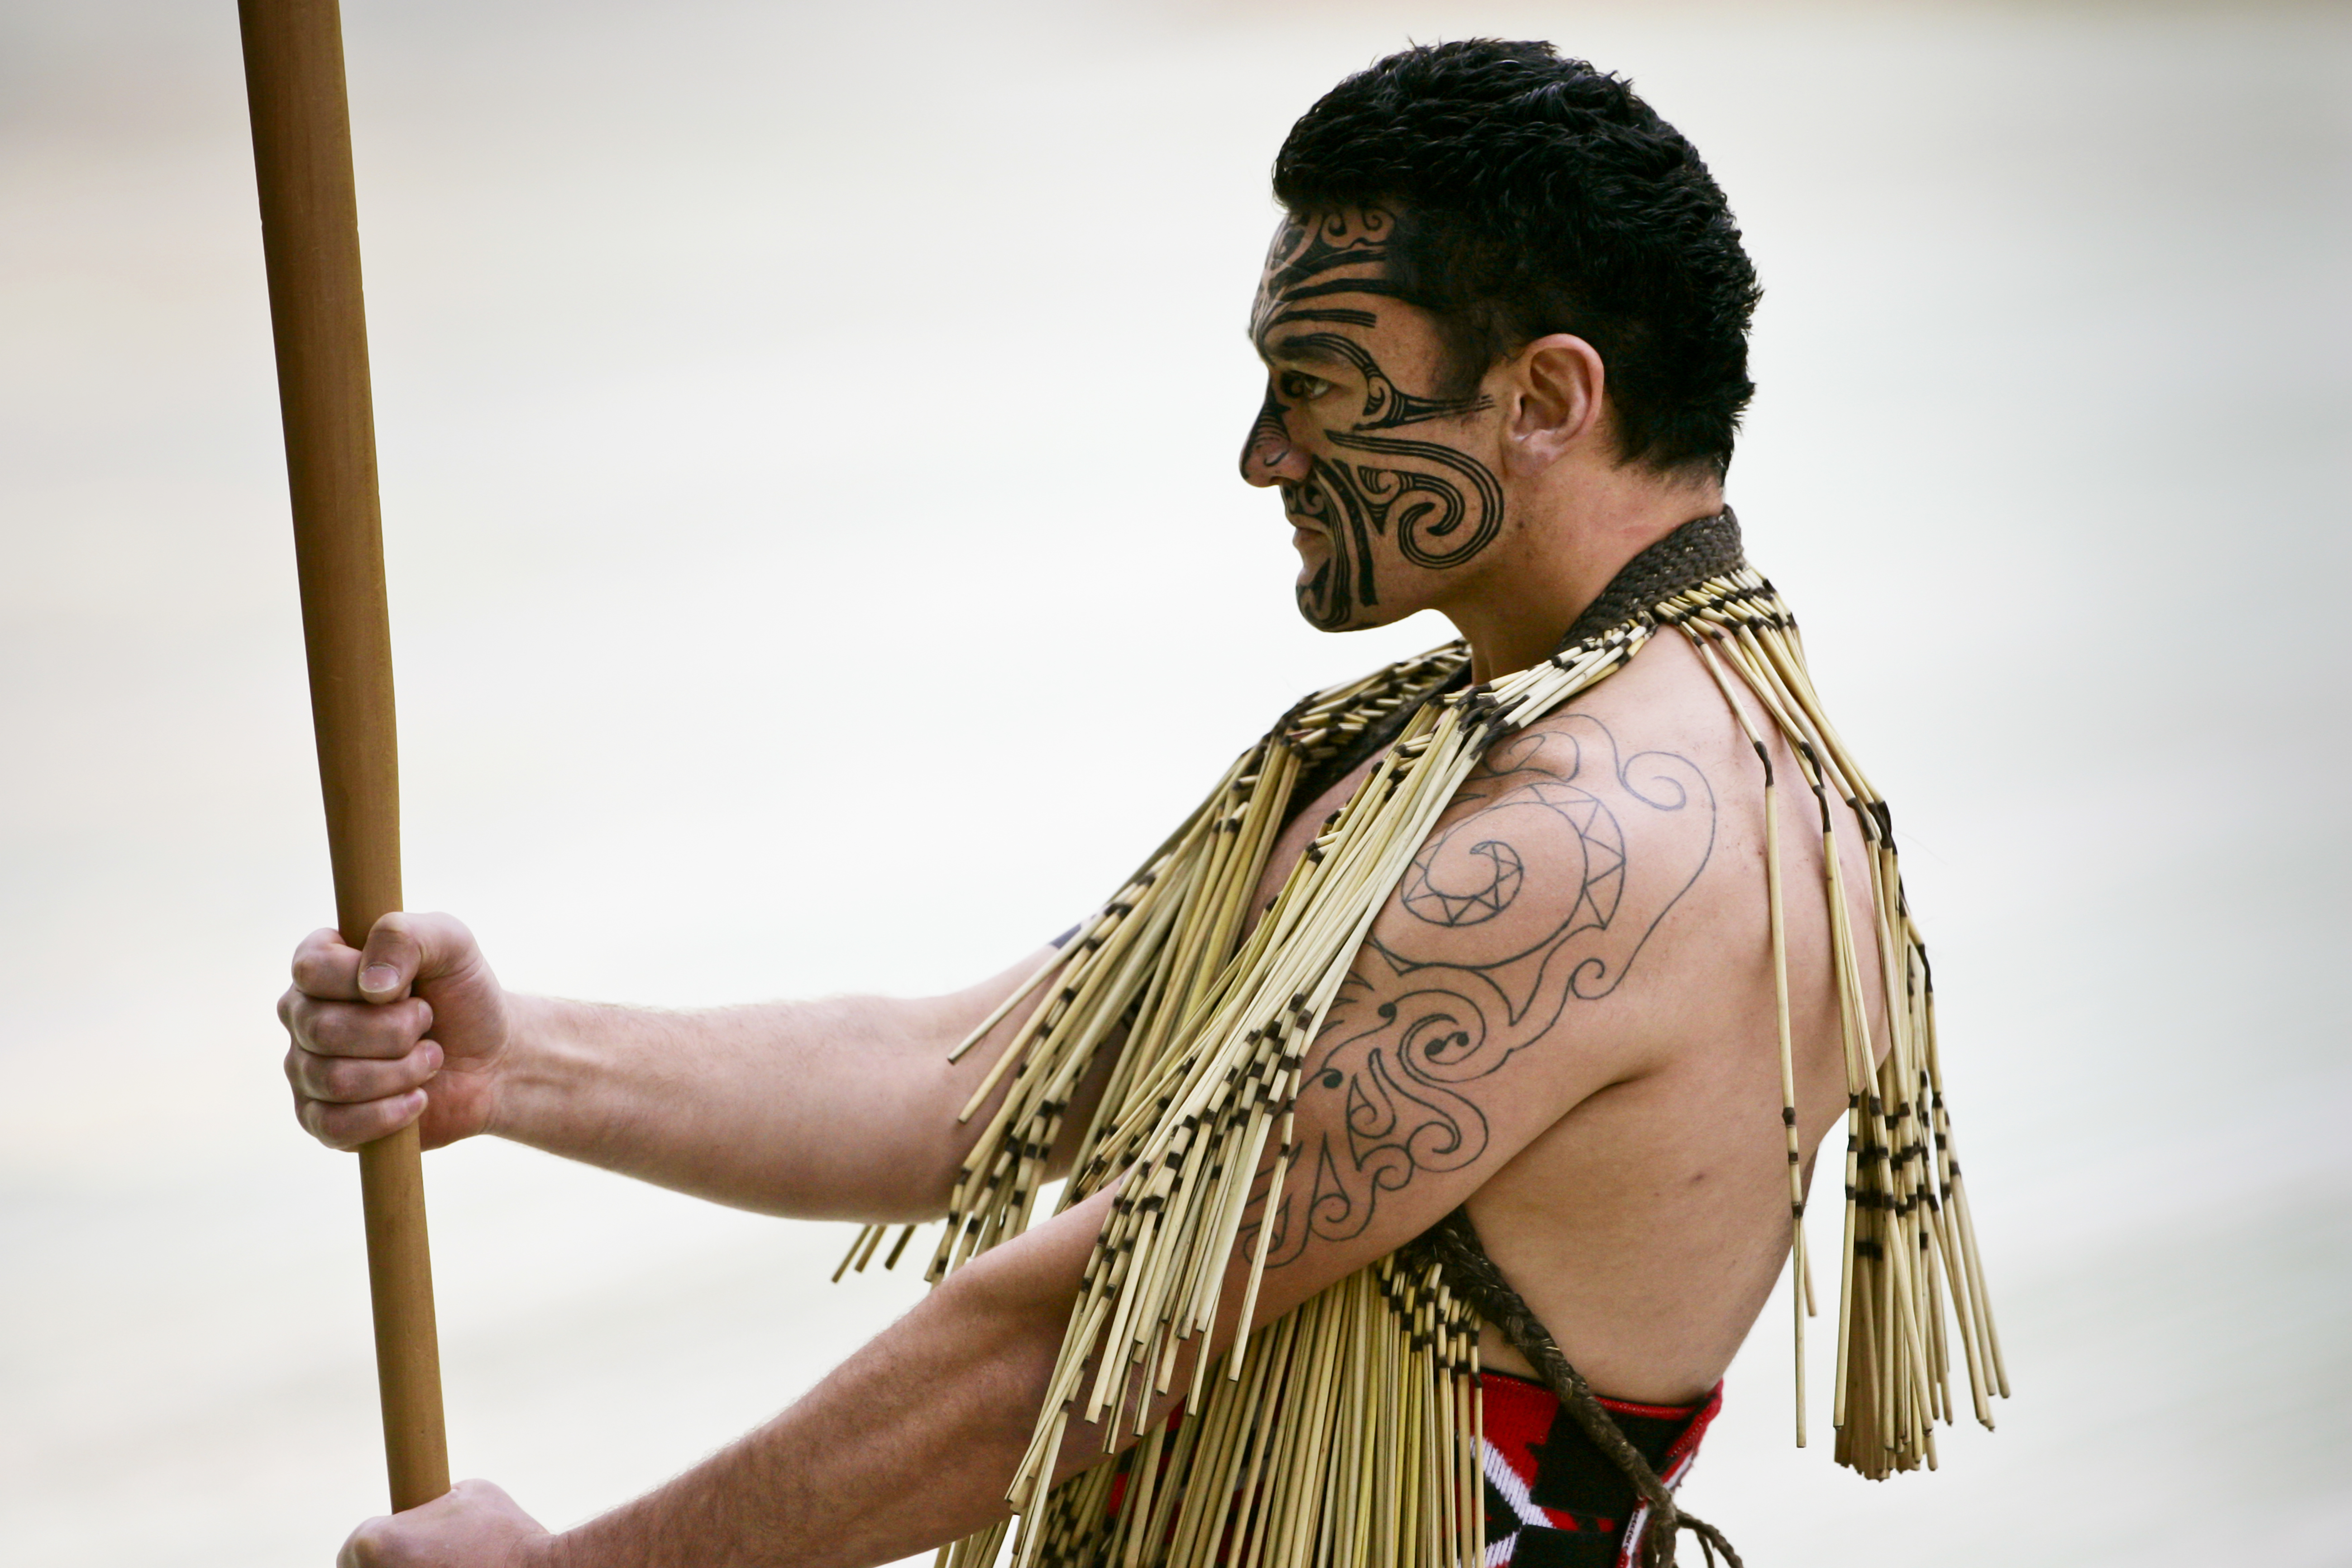 A traditional Haka performed by a Maori warrior